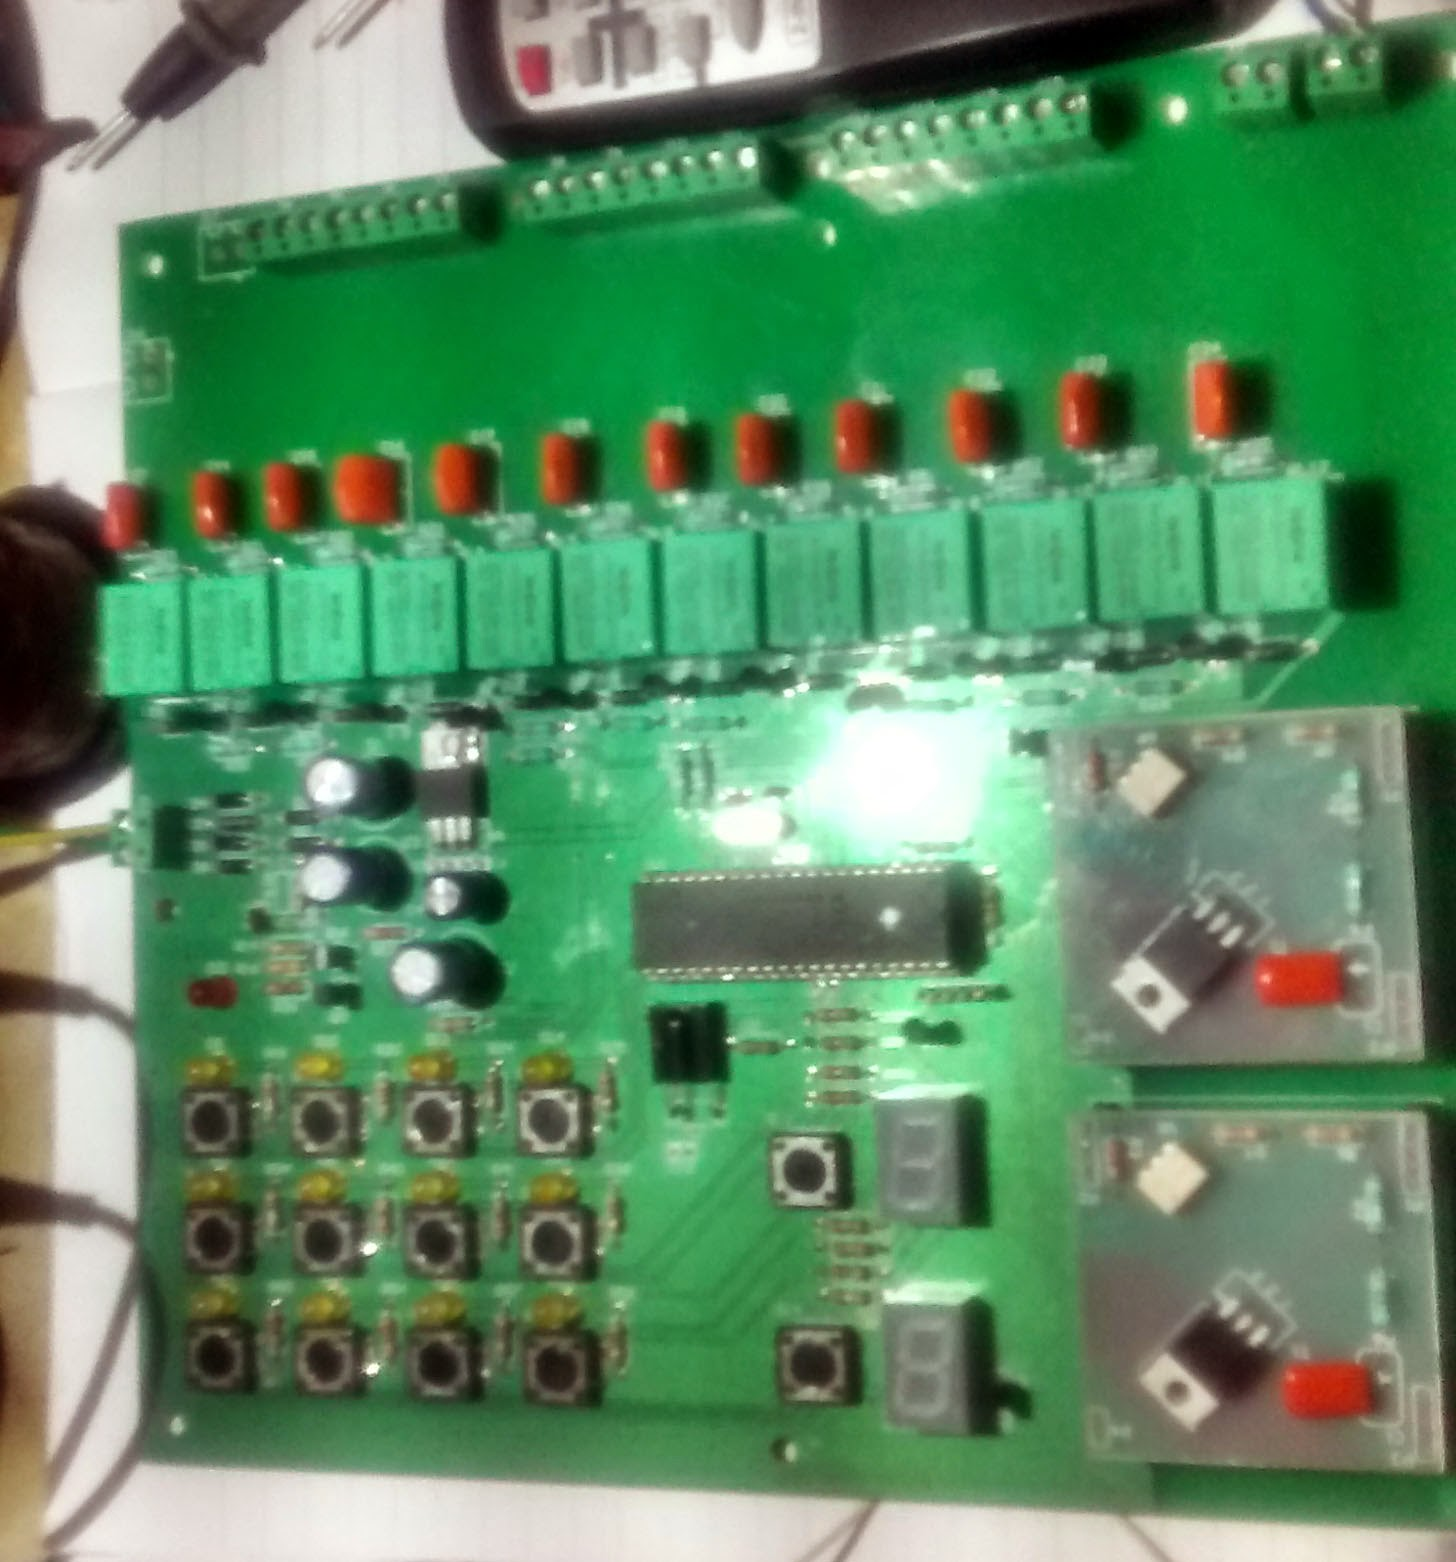 Embedded Engineering 12 Channel Relay 2 Dimmer Control Basic Circuit Nec Protocol Based Remote For This Bord